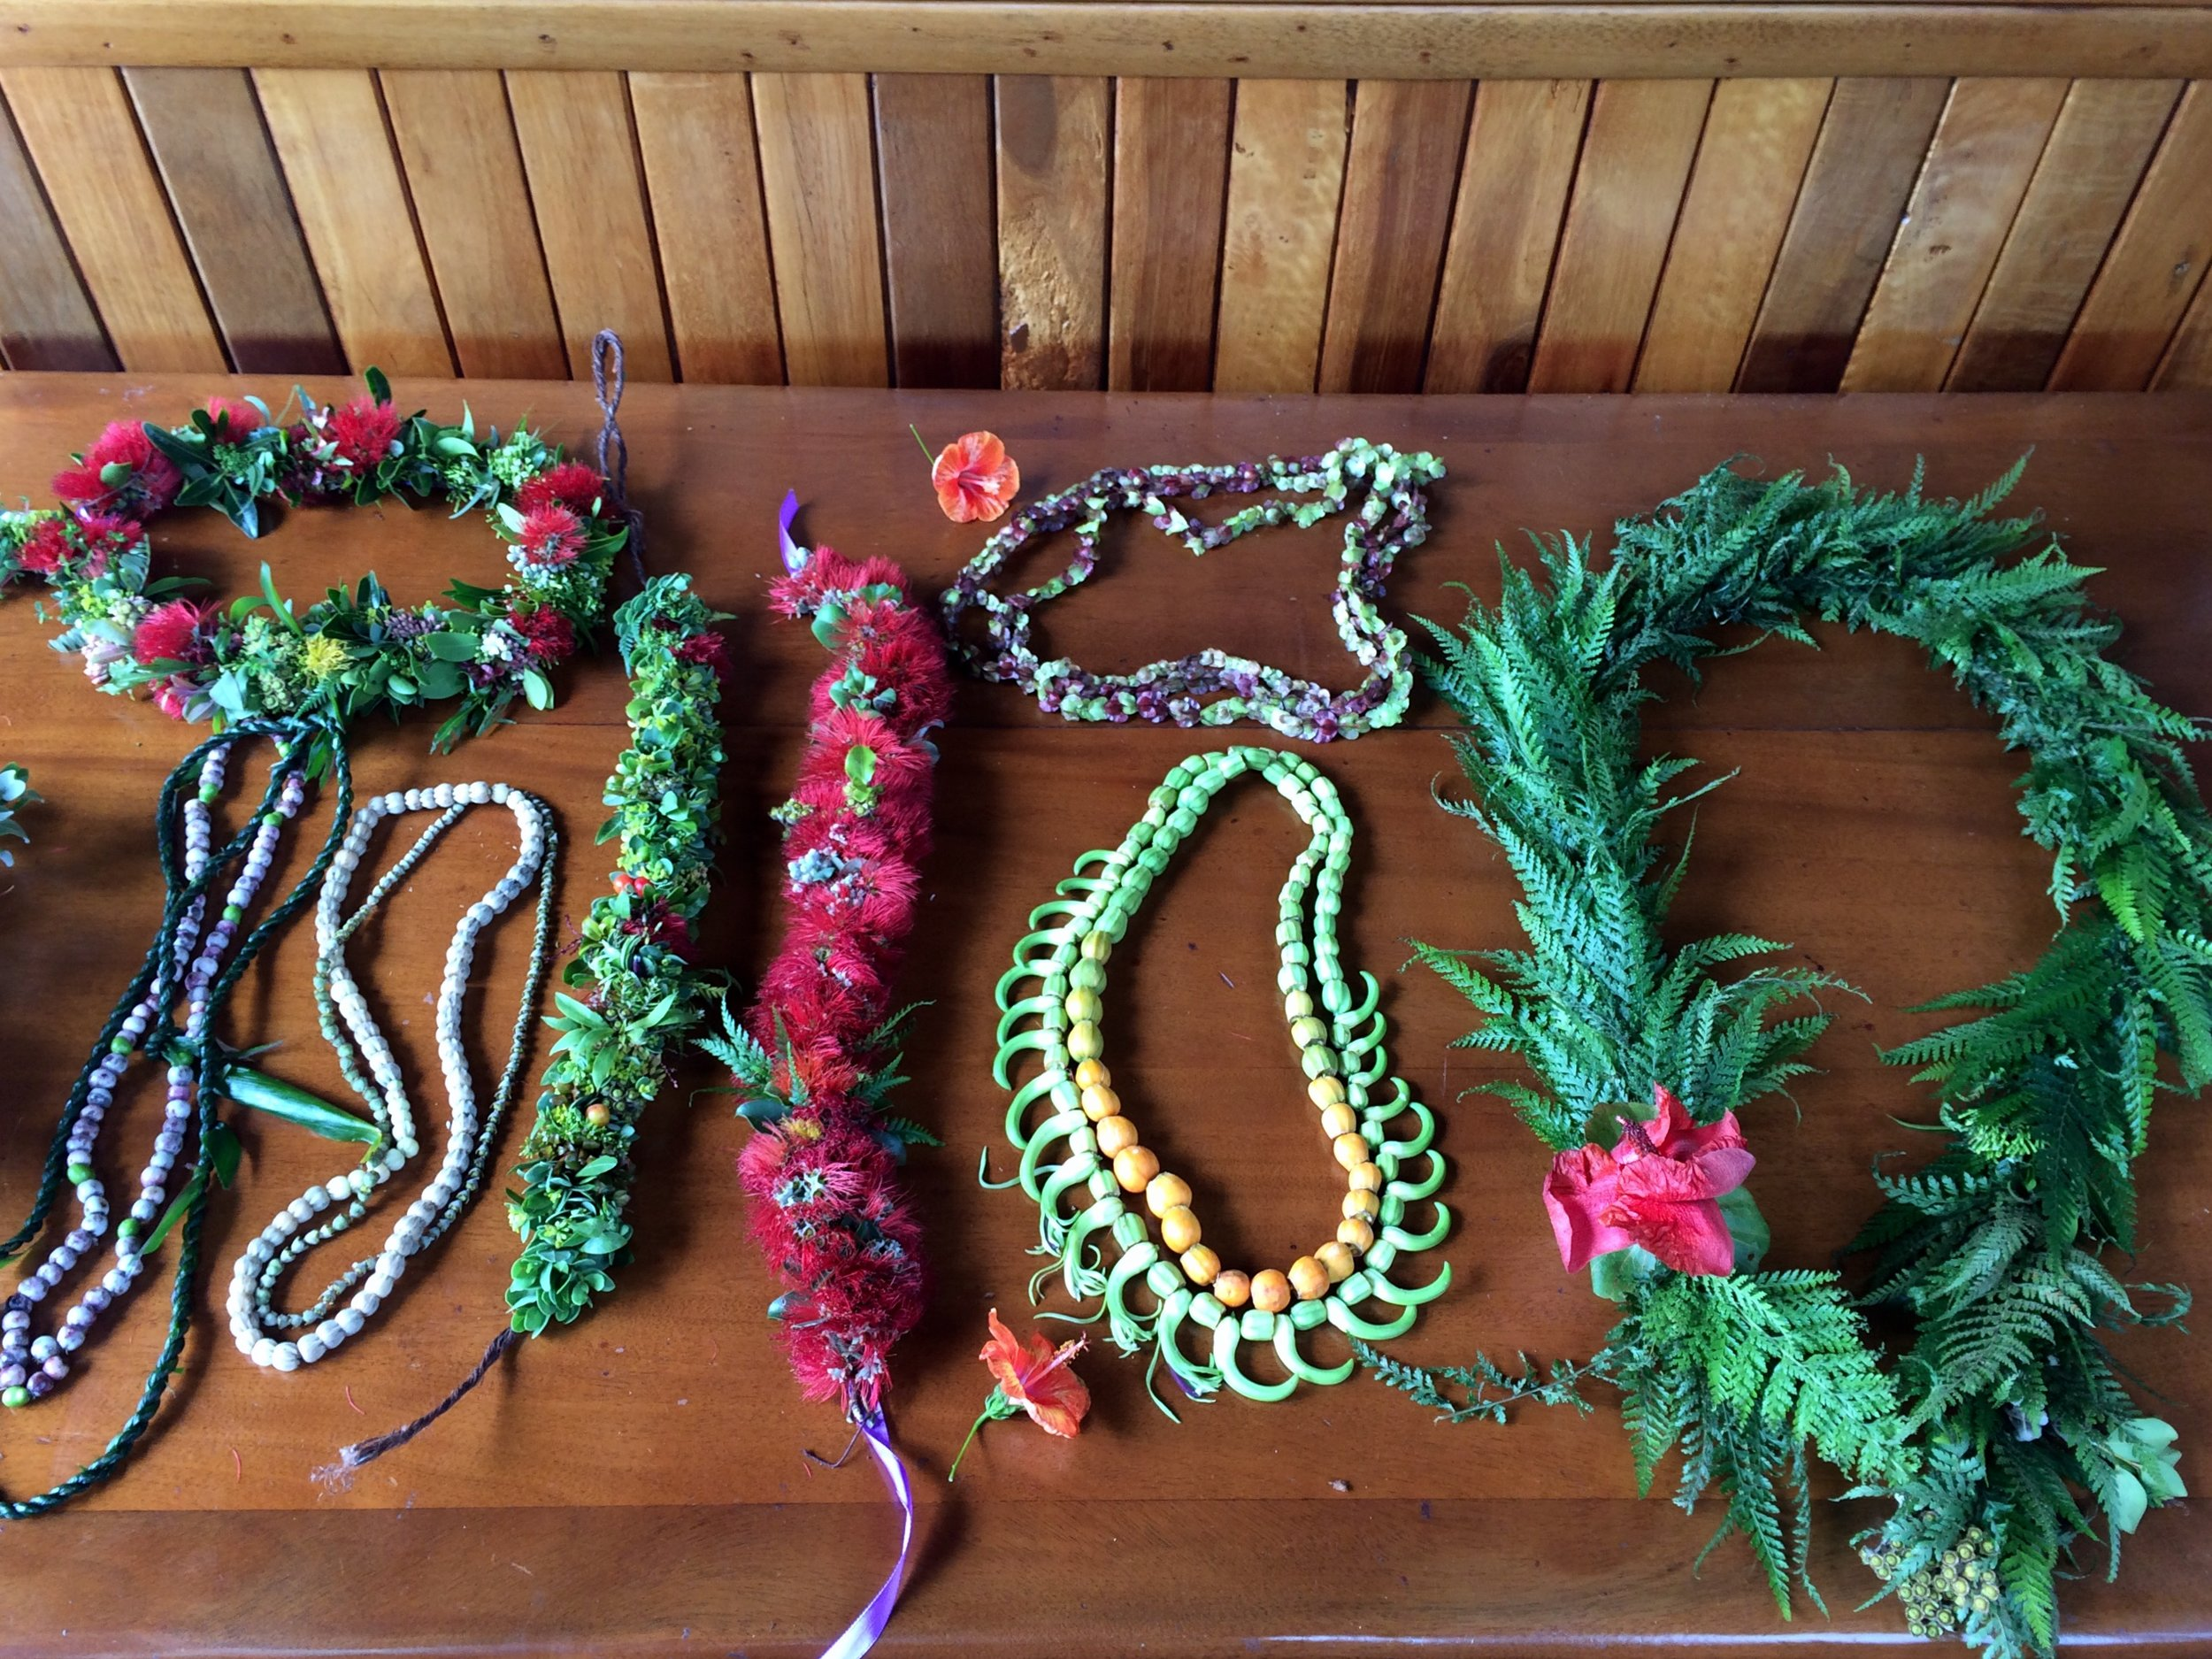 Native Wedding Lei   When challenged with an all native Hawaiian lei series, I reached out to many aunties, uncles, farmers, and the 'aina.  This is a collection of lei for a wedding, a variety of plants are used, some rarer than others, but all powerful in their own way.    Including, but not limited to:  ʻŌhiʻa lehua,   Metrosideros polymorpha , Palapalai,  Microlepia strigosa,   Hibiscus kokio,  ʻŌhā,  Clermontia hawaiiensis , 'Iliahi,  Santalum freycinetianum,  the endemic sandalwood, Pukiawe,  Leptecophylla tameiameiae , ʻŌhelo ʻai,  Vaccinium reticulatum , ʻAʻaliʻi,  Dodonaea viscosa